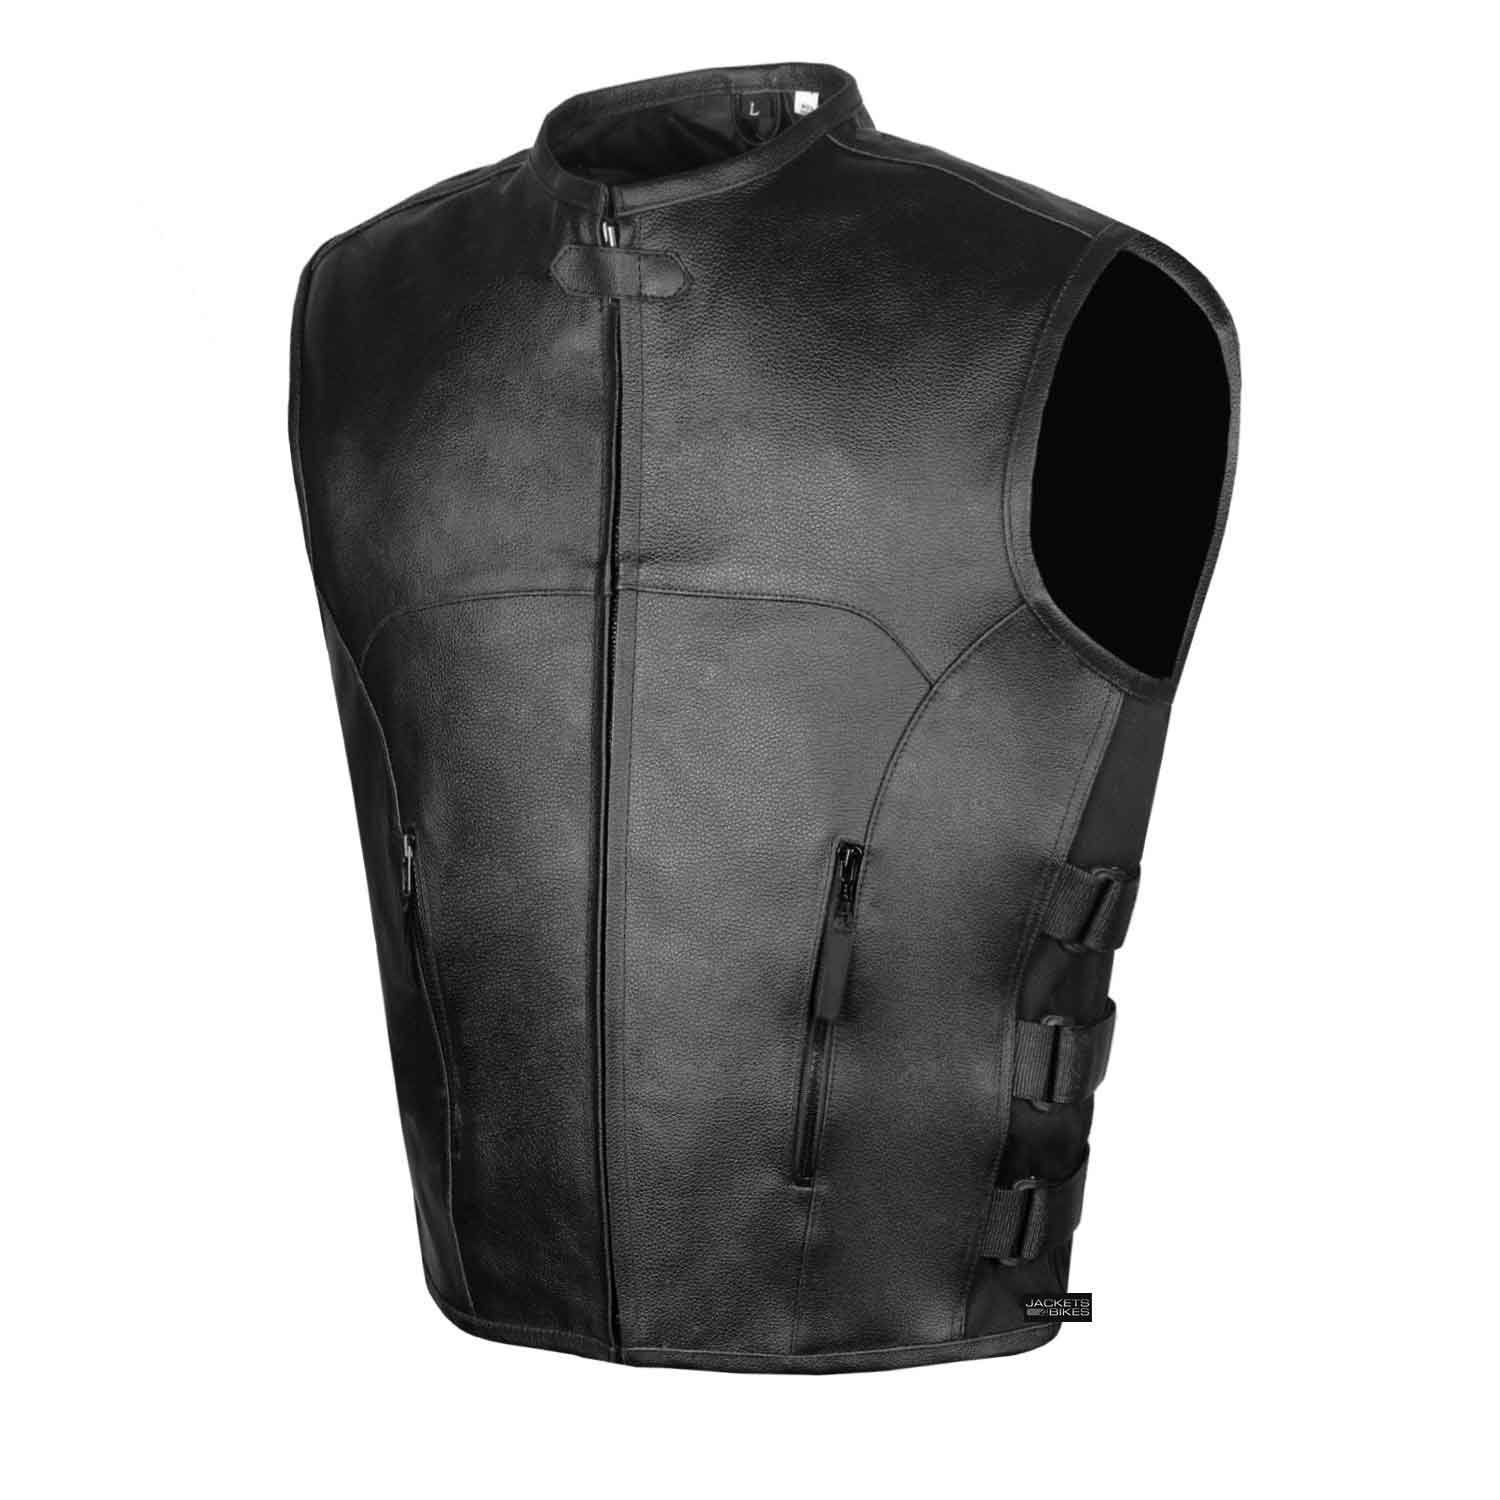 Men's Biker Swat Style Armor Motorcycle Leather Vest Conceal Carry Pockets XXL